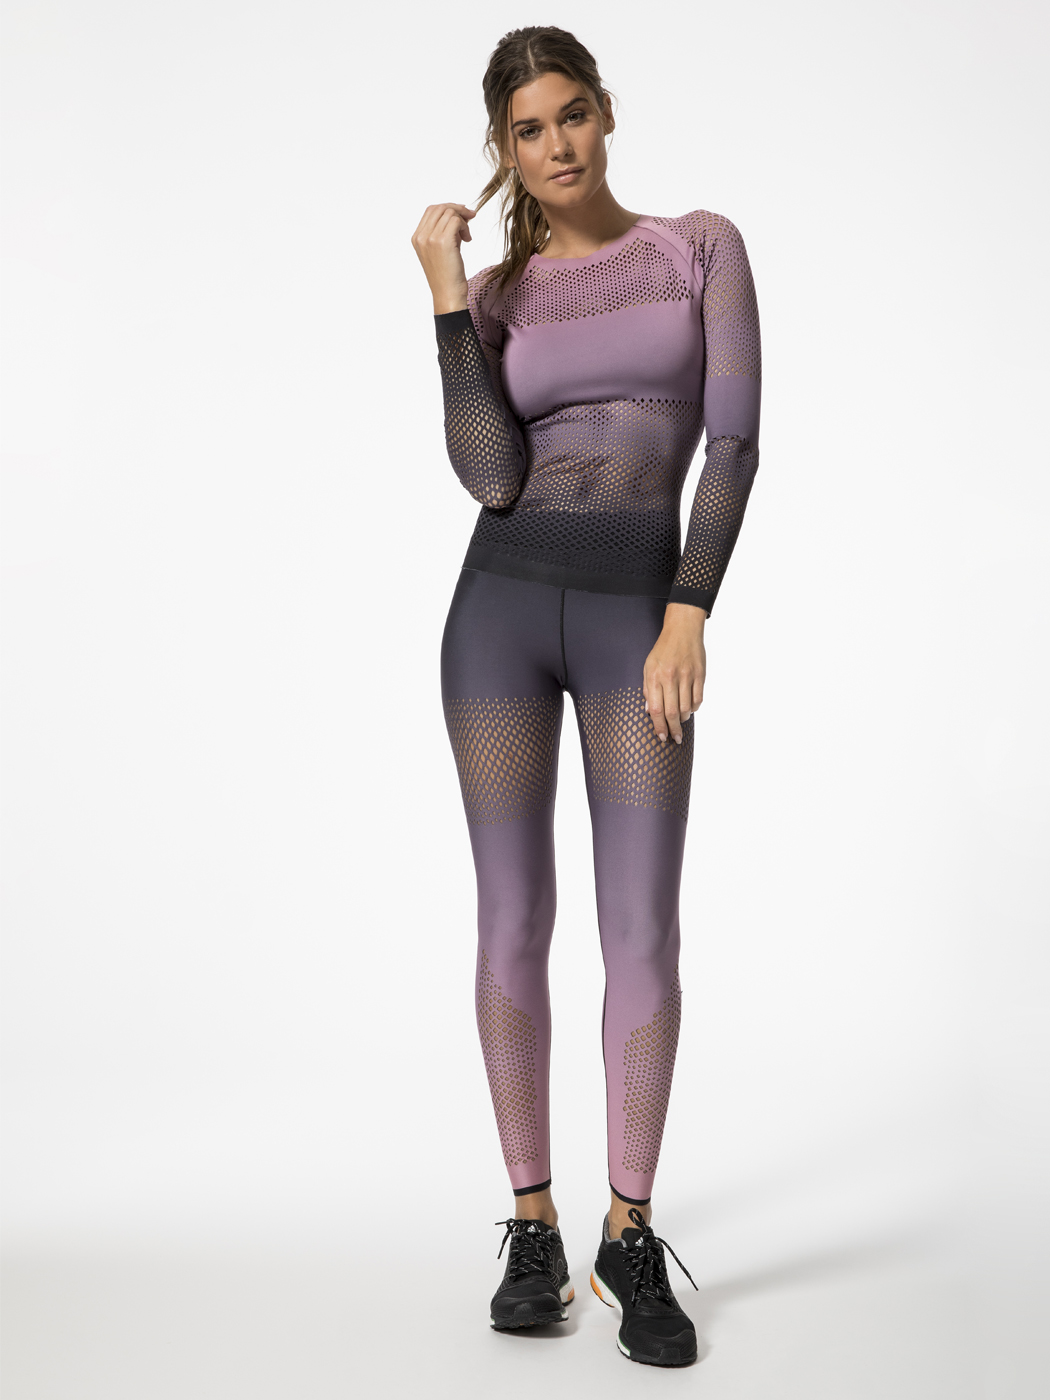 1-ultracor-ultramesh-silk-leggings-bottoms-graident-rose.jpg